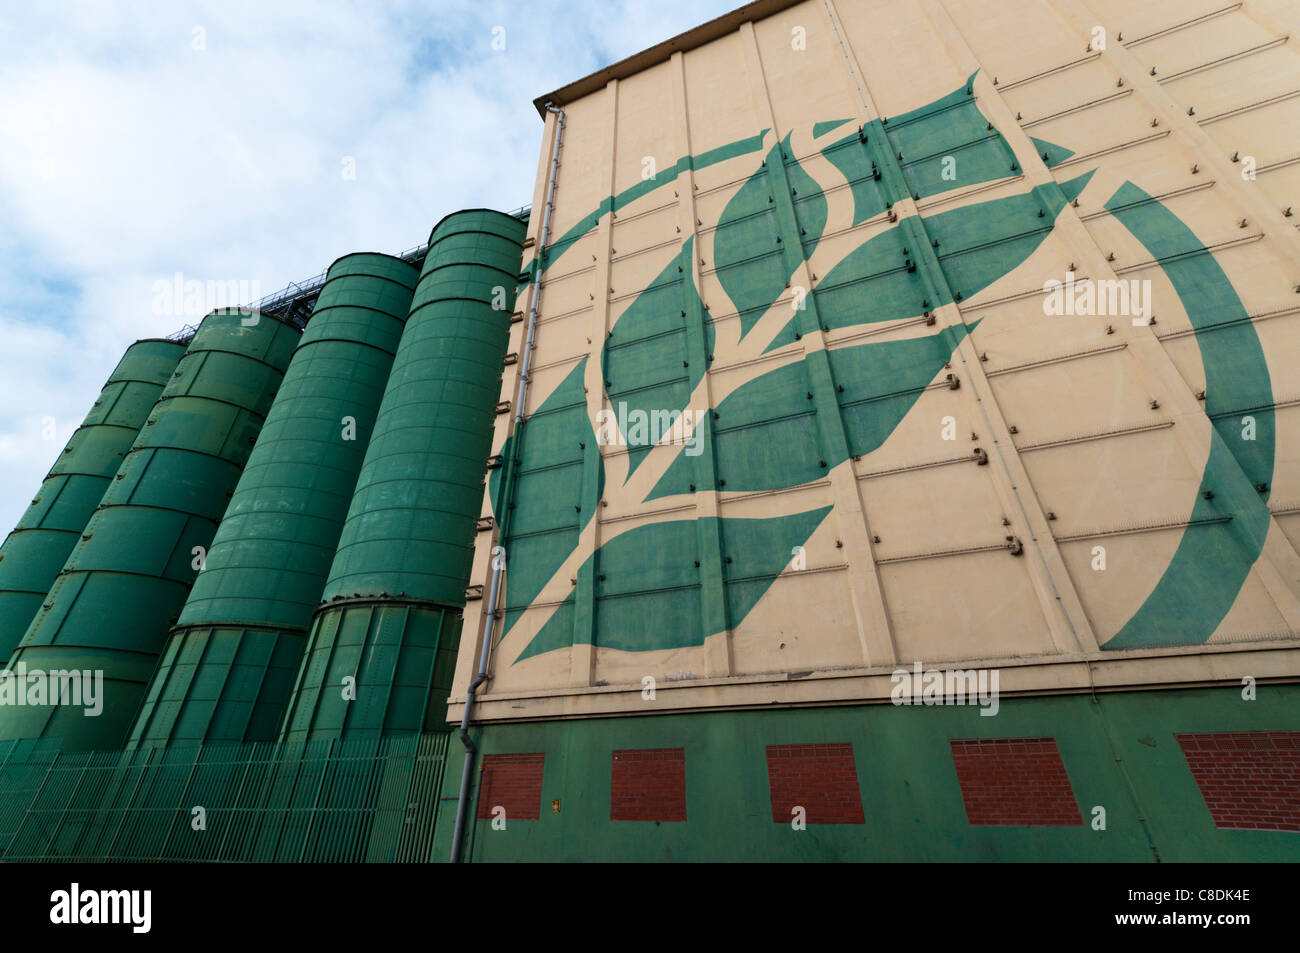 Rank Hovis McDougall grain silos in Trafford Park, Manchester - Stock Image